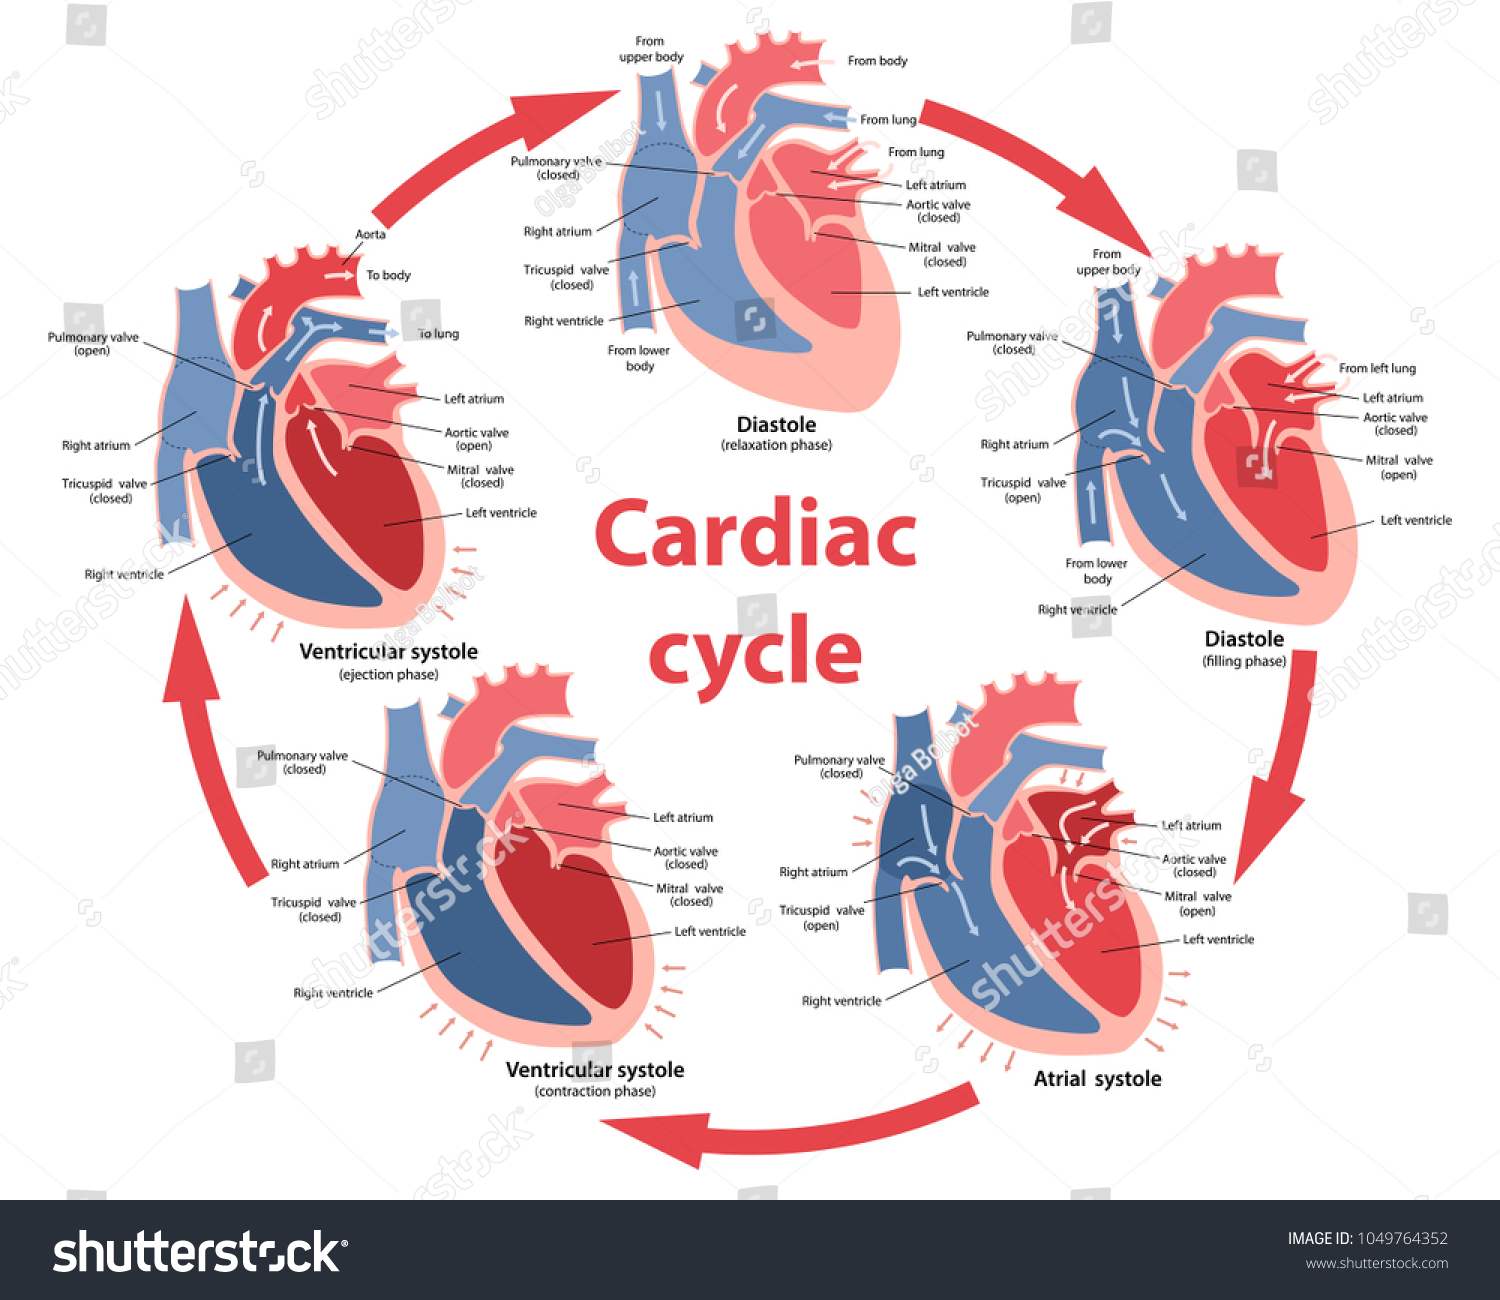 Diagram phases cardiac cycle main parts stock vector 1049764352 diagram of the phases of cardiac cycle with main parts labeled circulation of blood through pooptronica Choice Image